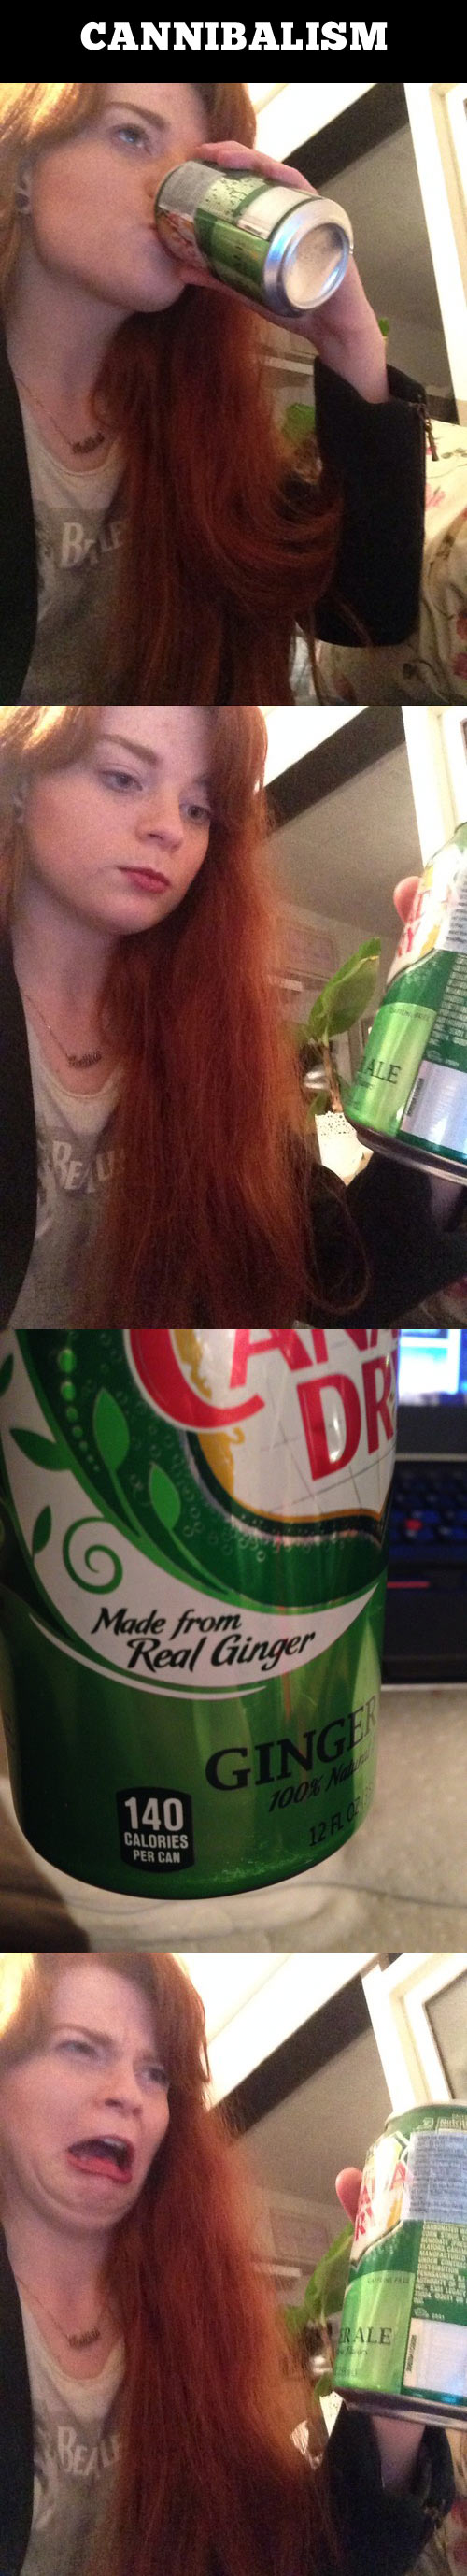 funny-ginger-drink-cannibalism-girl